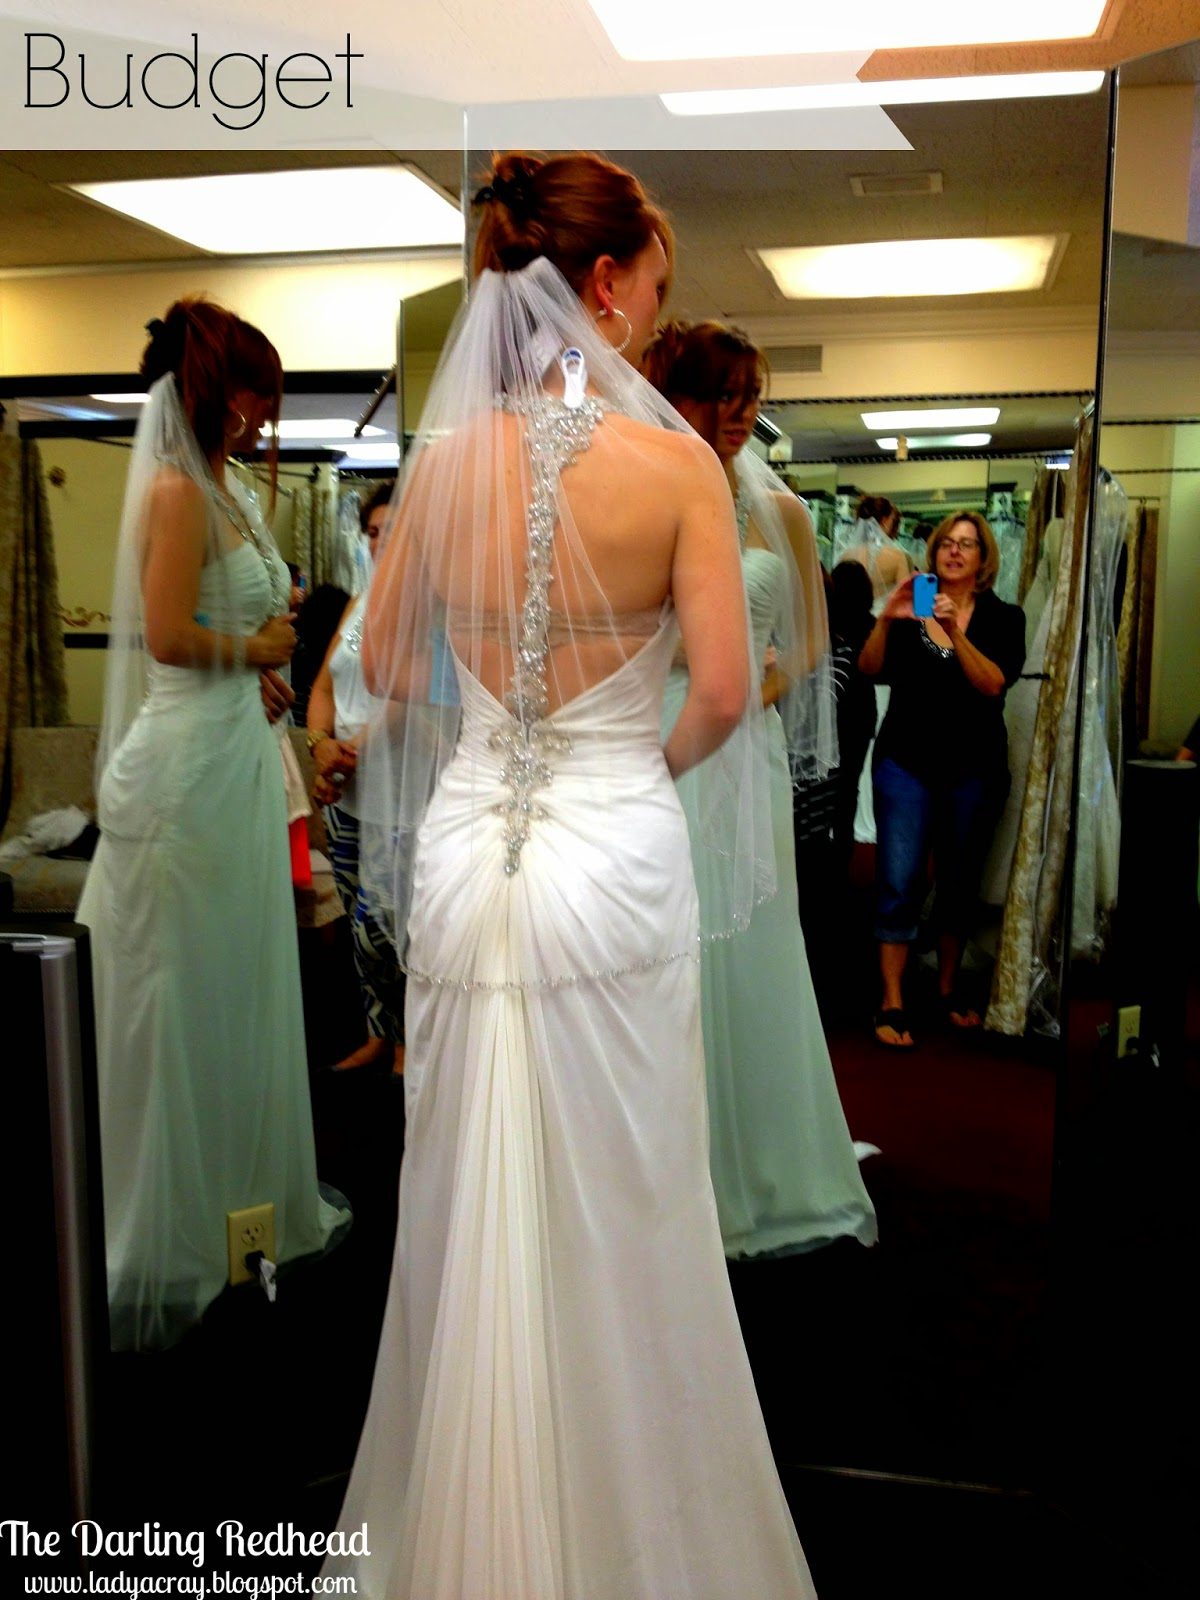 The Darling Redhead: 4 Tips for Wedding Dress Shopping